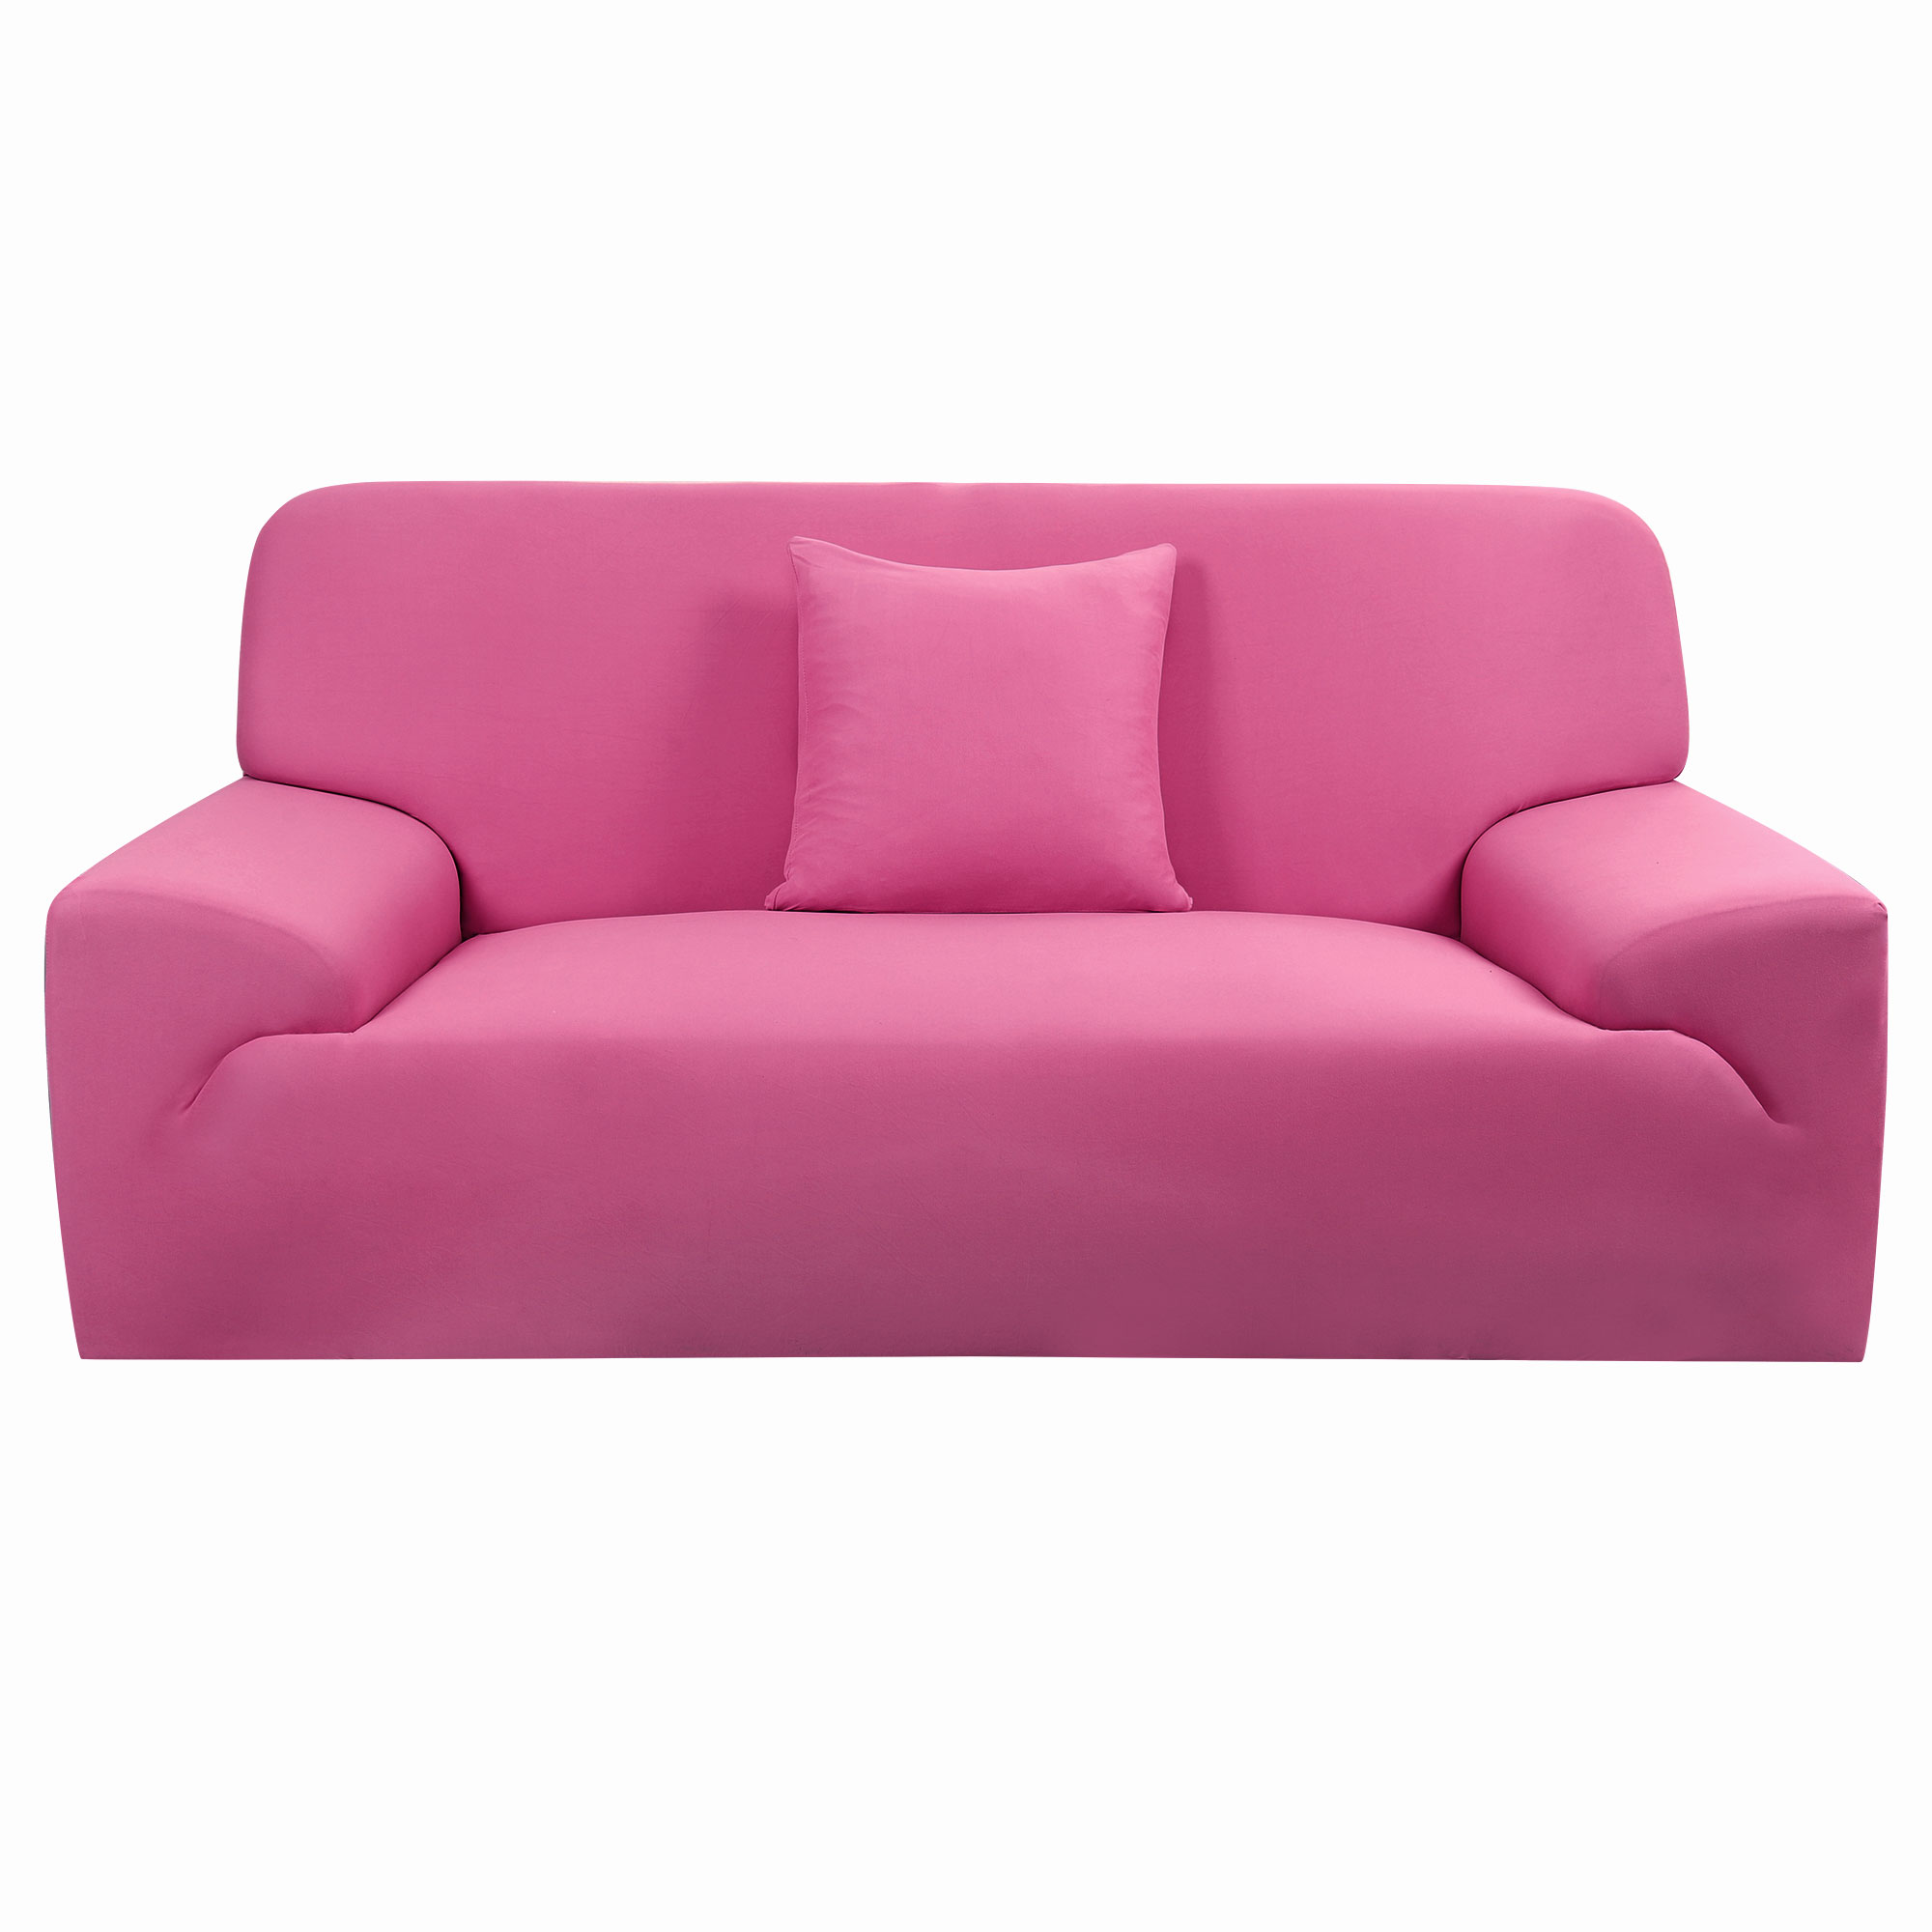 Household Sofa Loveseat Stretch Cover Slipcover Protector Fuchsia 74''-90''